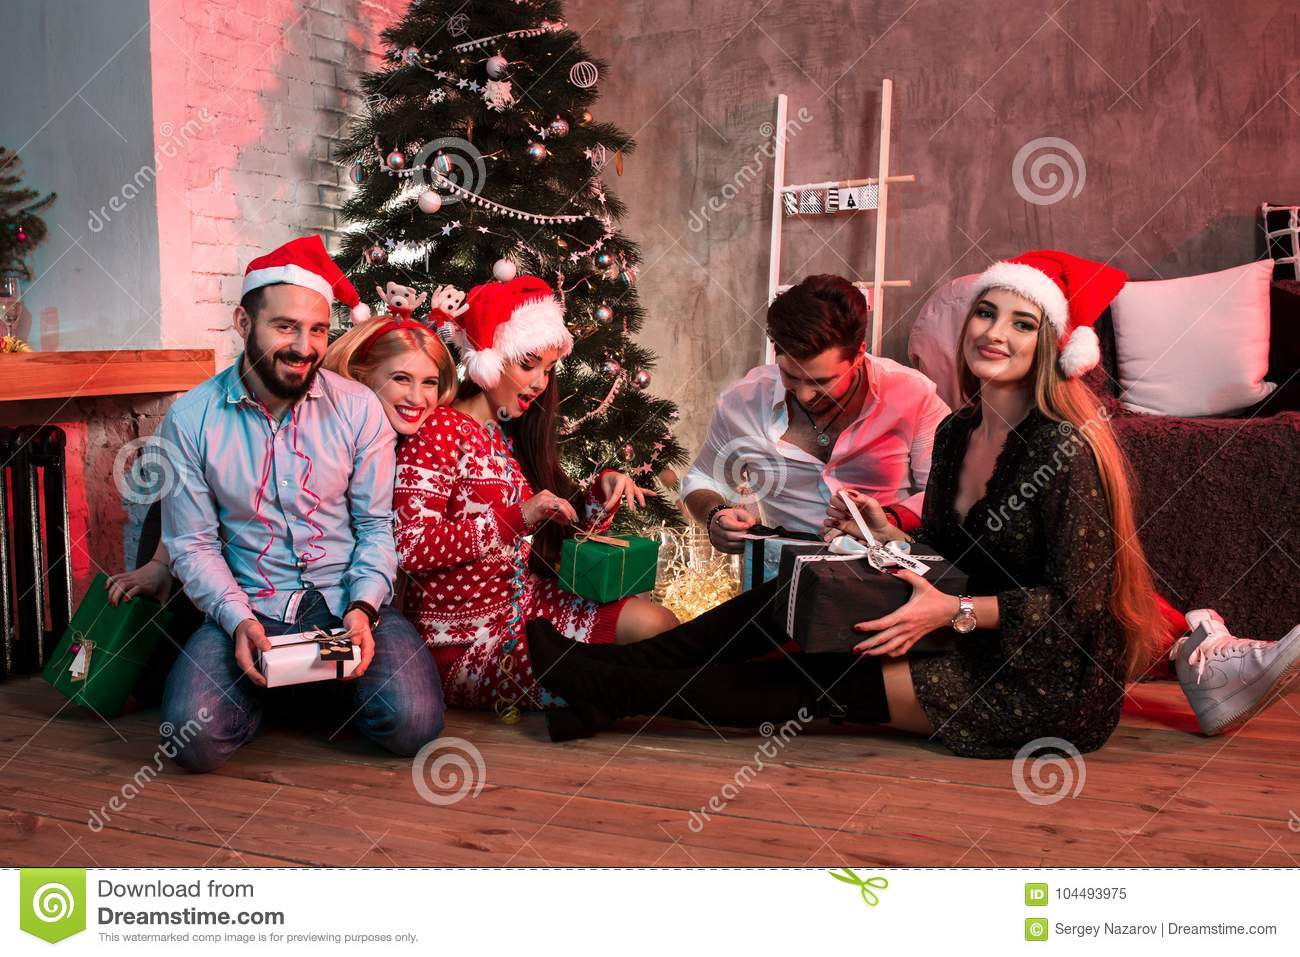 Picture Showing Group Of Friends With Christmas Presents On Party